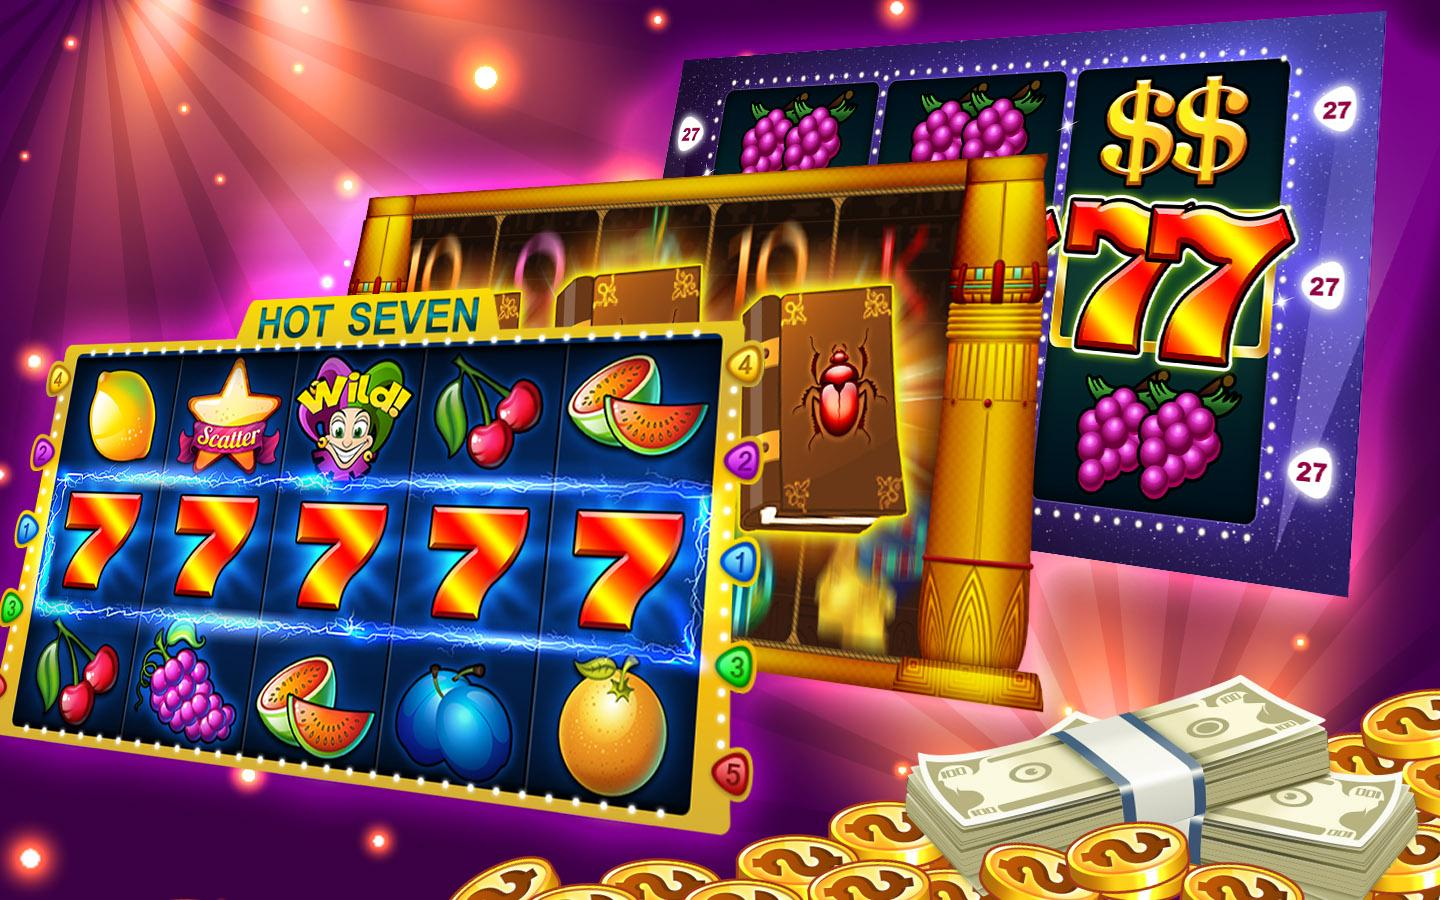 Team Action Slot Machine - Play Real Casino Slots Online